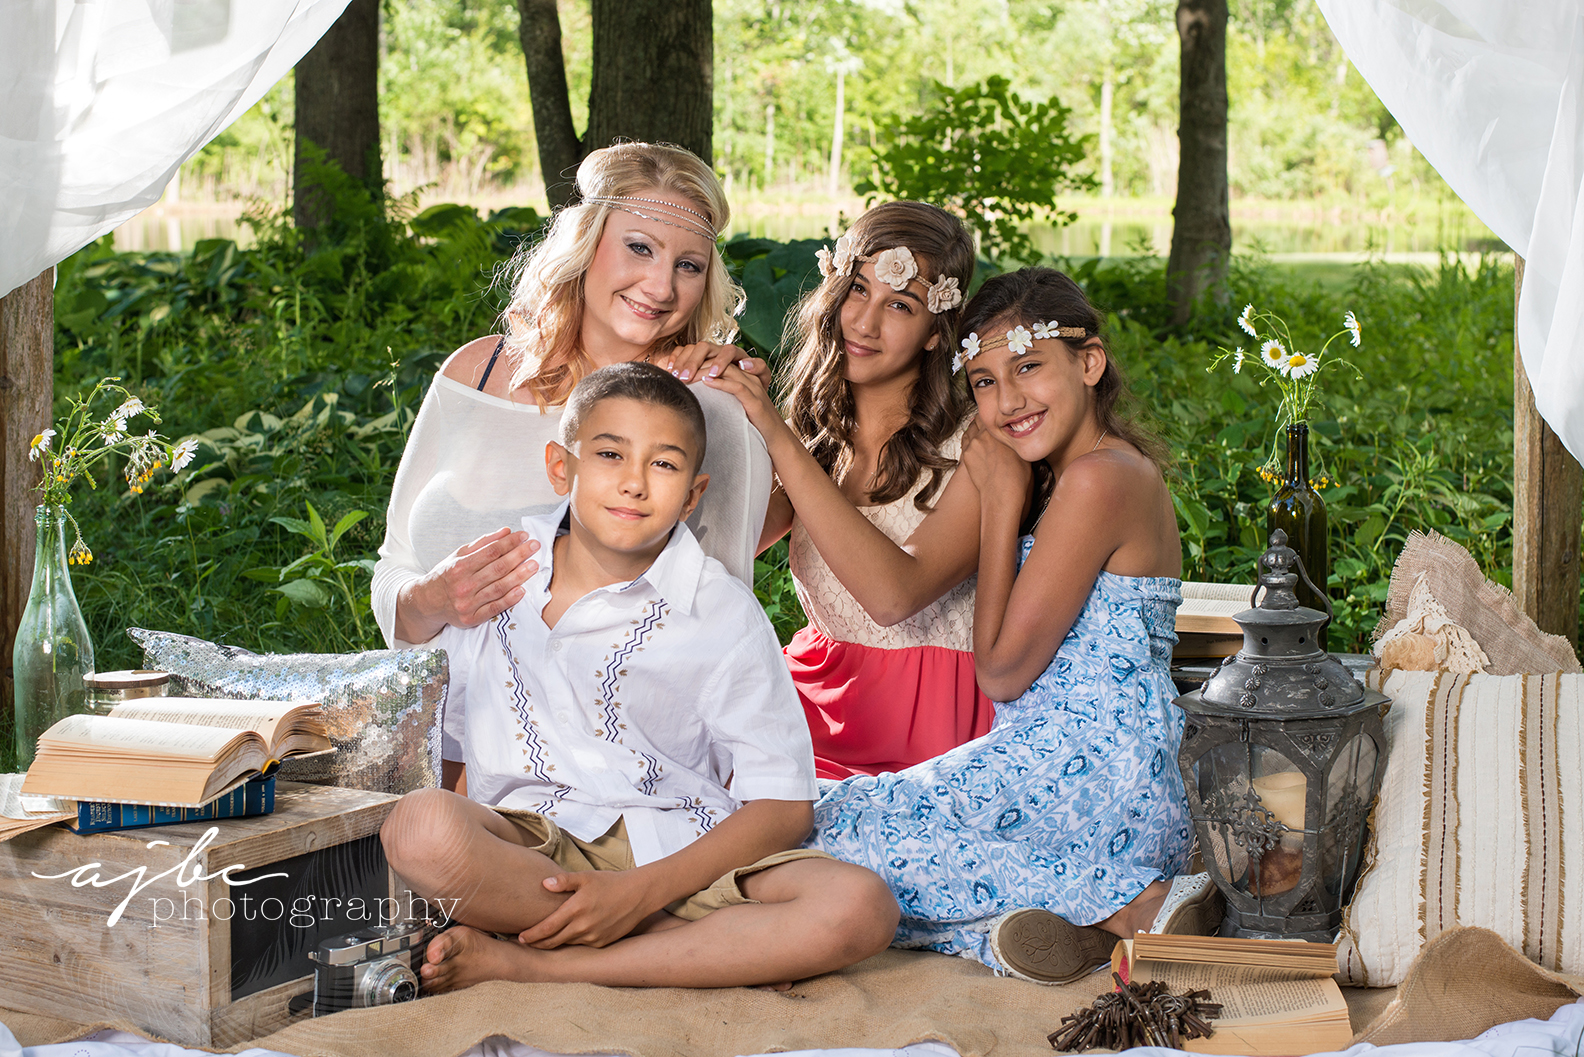 ajbcphotography-porthuron-michigan-family-photographer-outdoors-picnic-brother-sister-mother-portraits-love.jpg